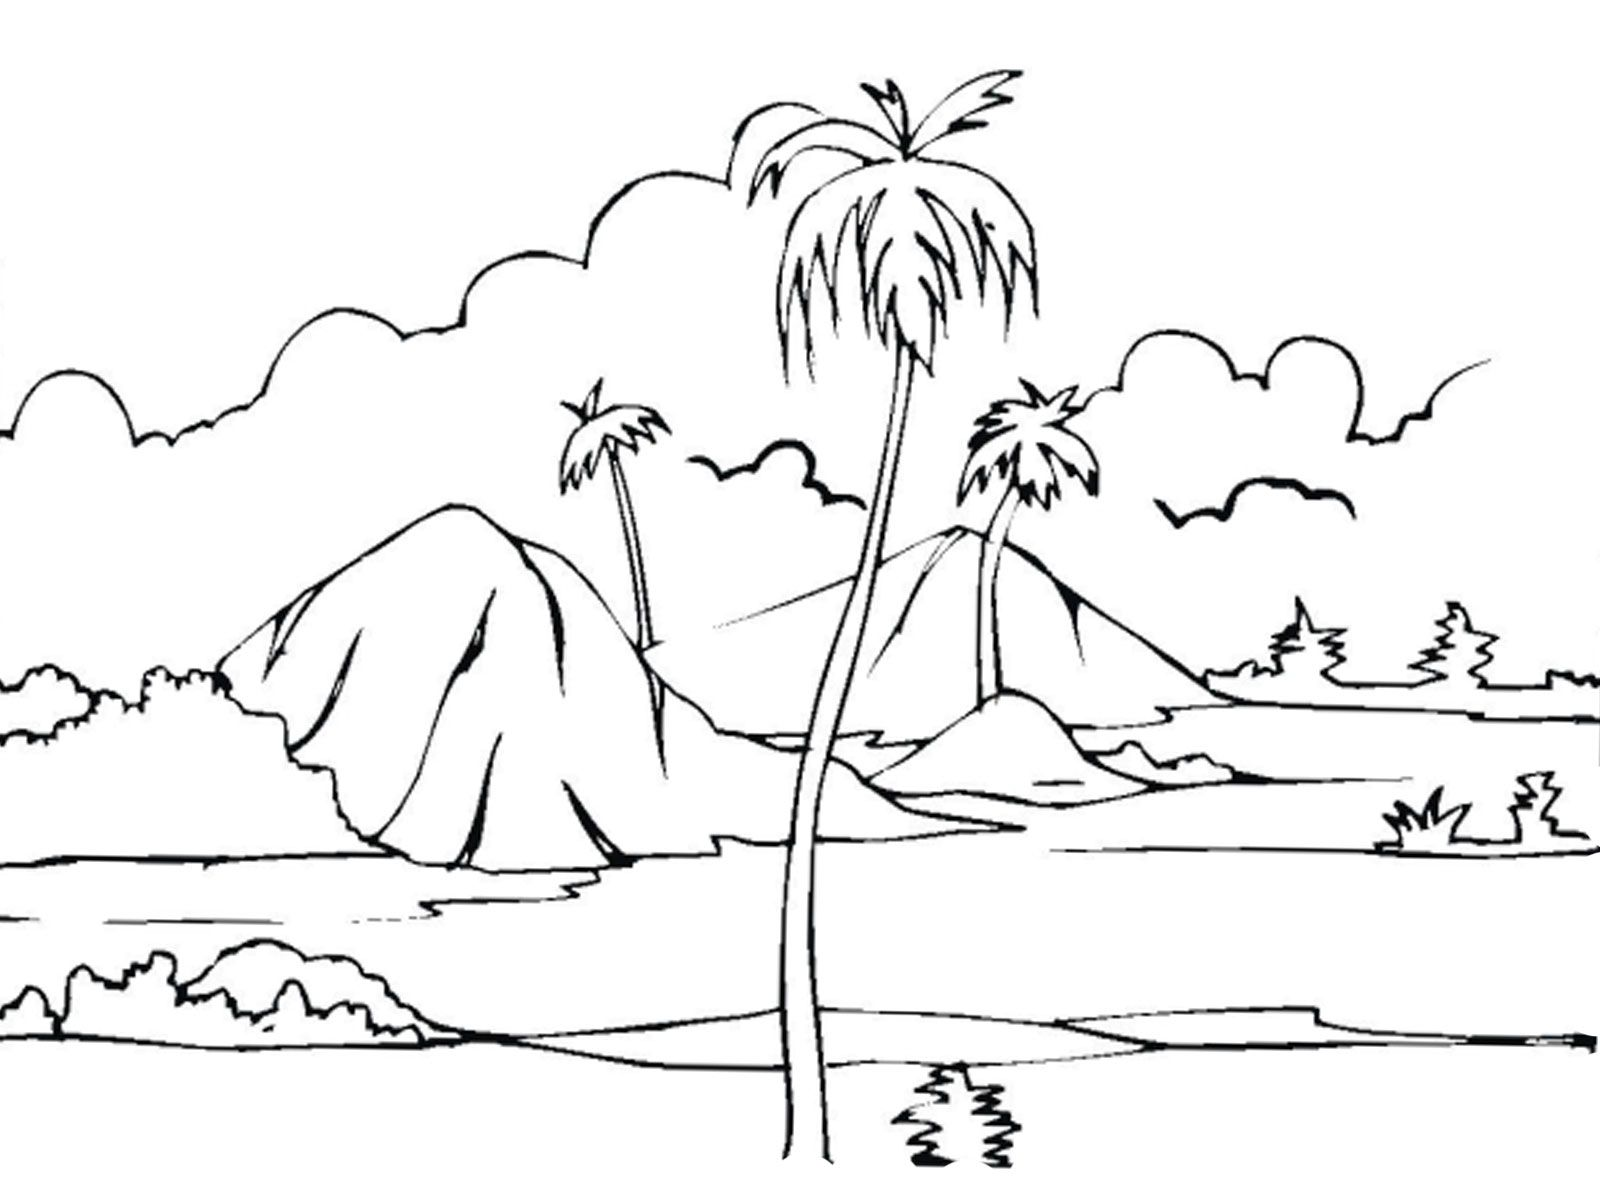 Free coloring pages landscapes - Free Printable Nature Coloring Pages For Kids Best Coloring Pages For Kids Island Landscape Coloring Pages